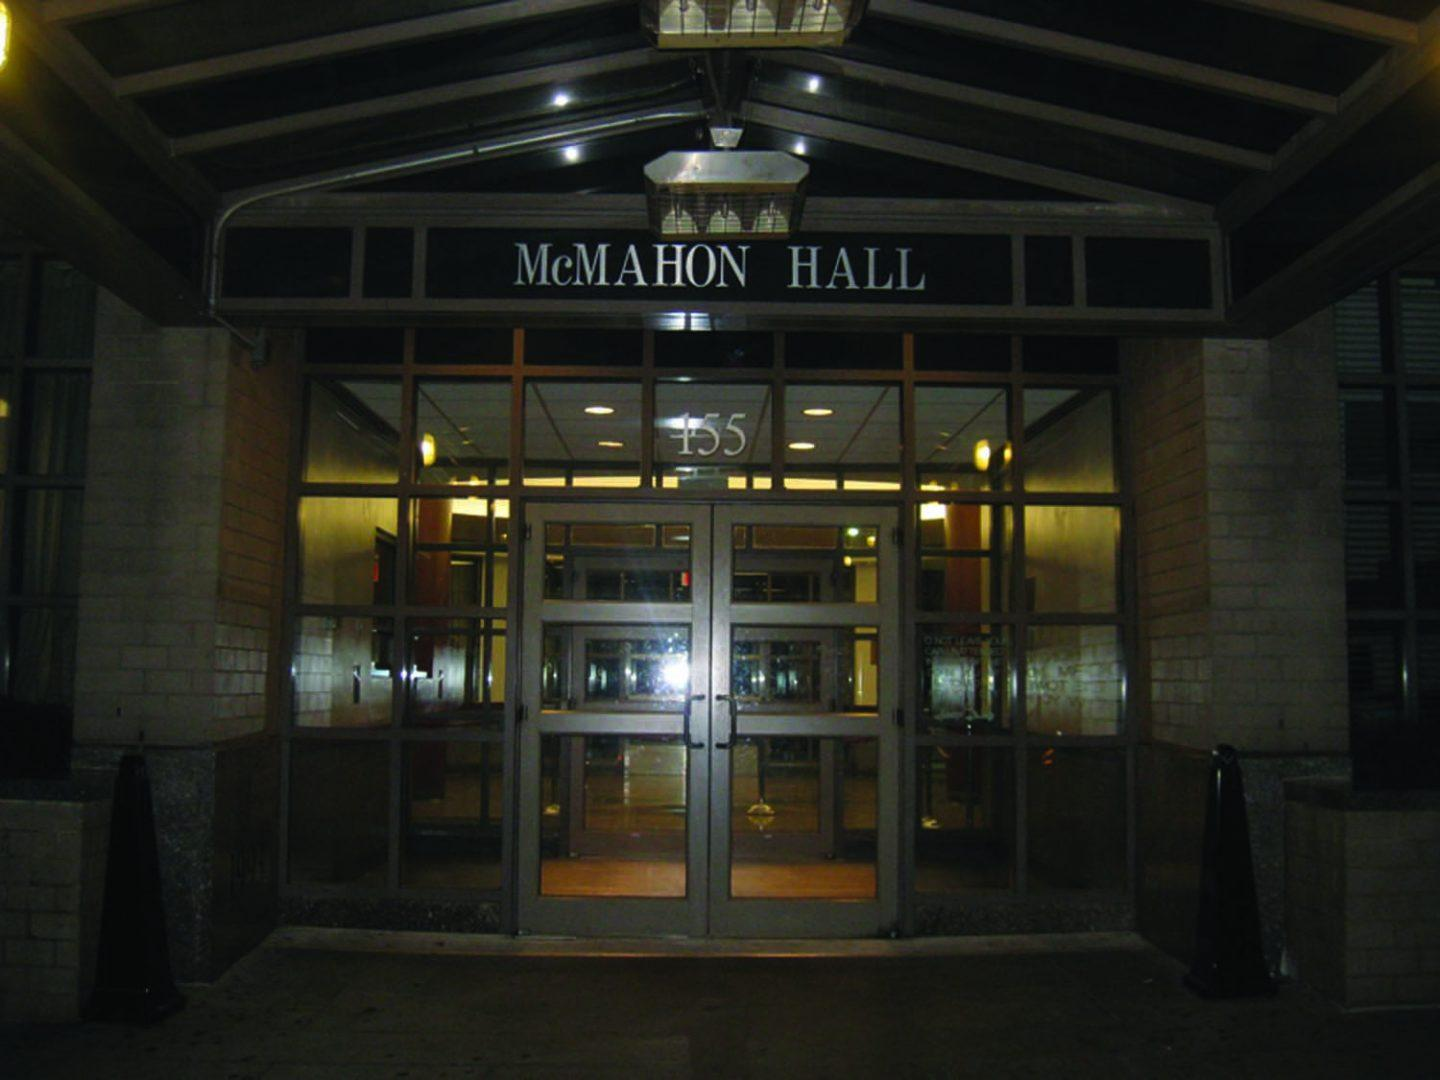 McMahon Hall's doors aren't exactly friendly to those students who don't have the means to pay outrageous housing prices. (Salma Elmehdawi/The Observer)